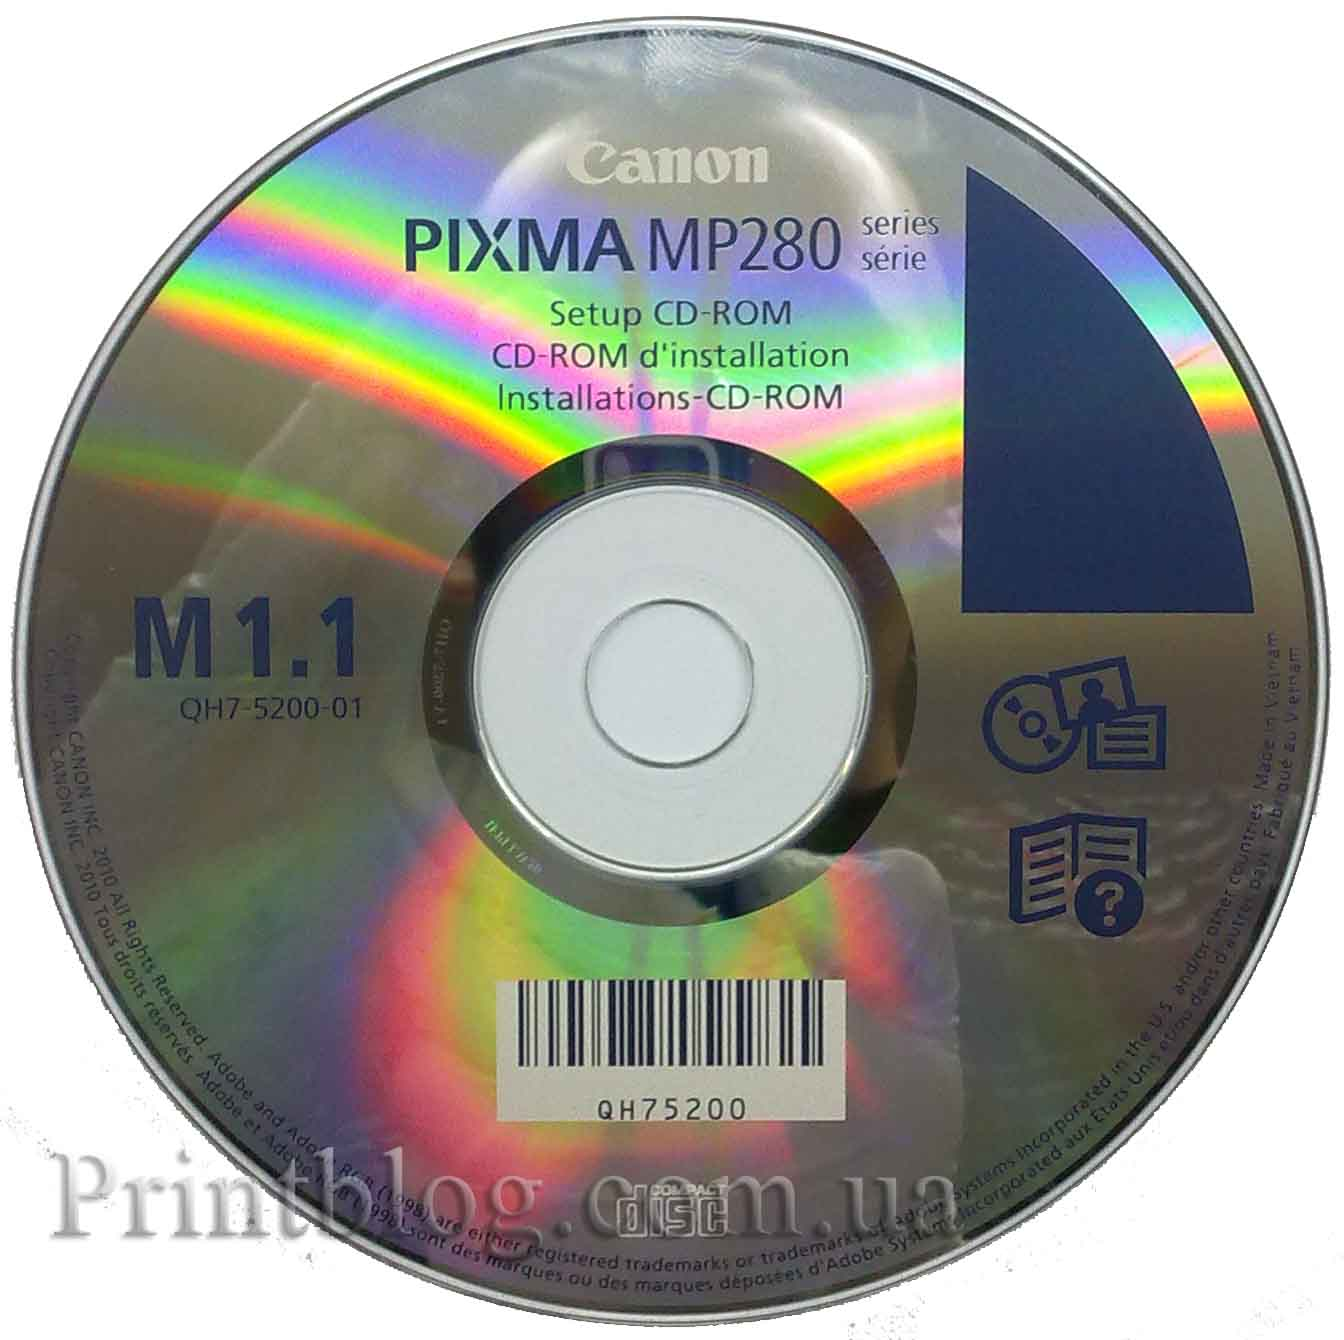 Canon pixma mp280 ������� ������� - ���������� ���������� ...